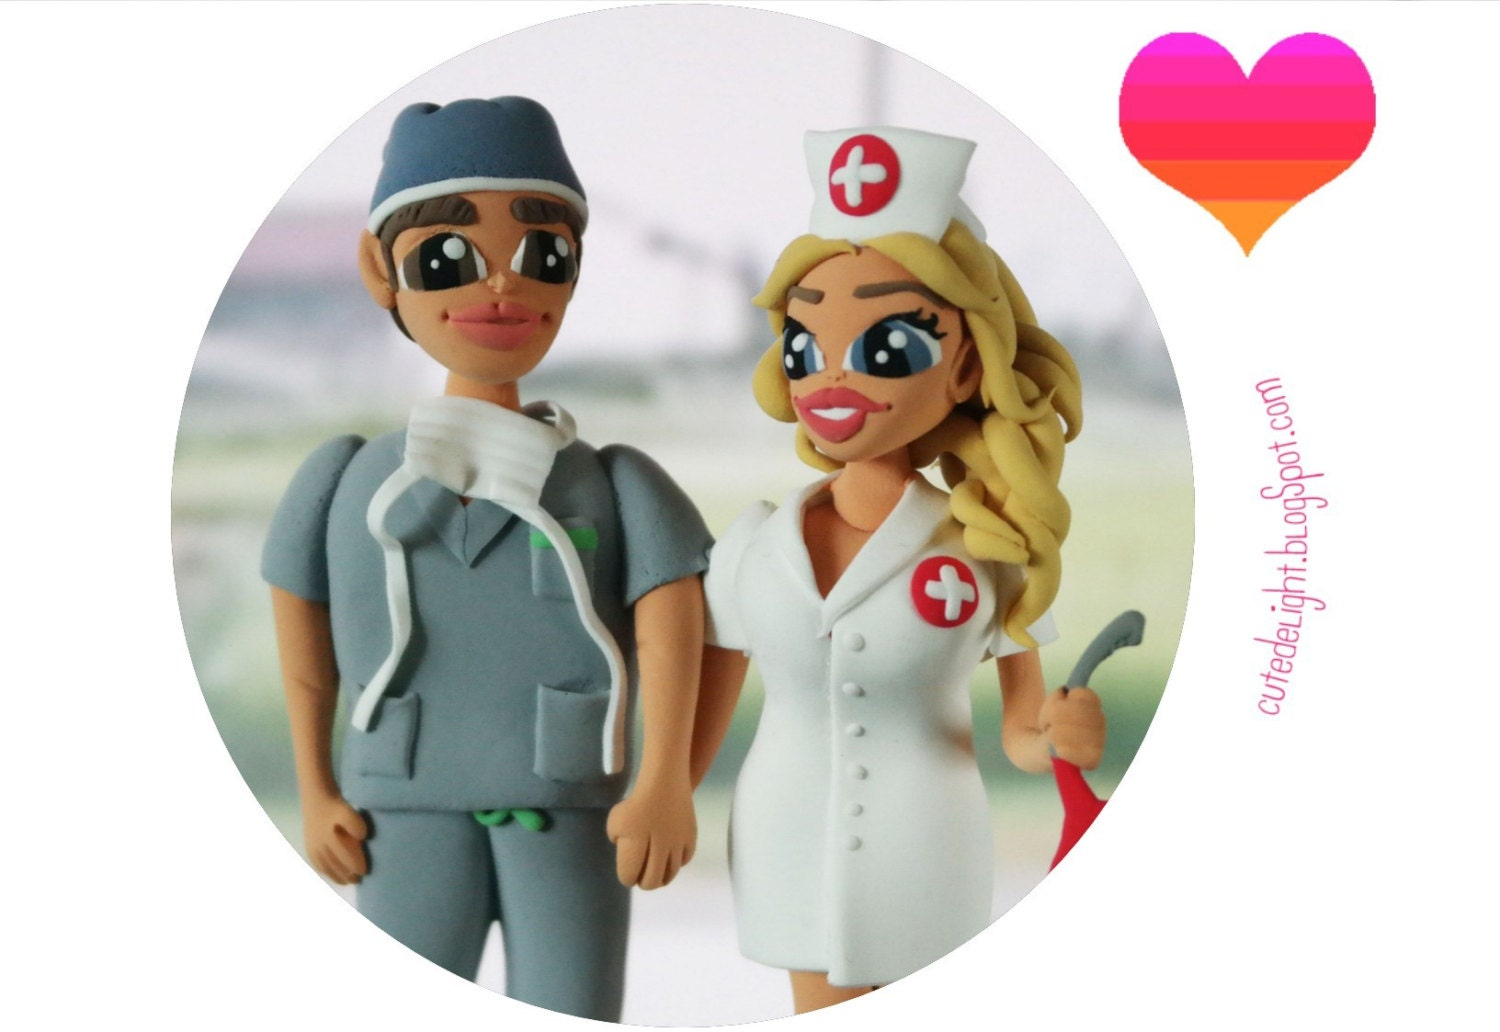 Wedding cake topper doctor cake topper doctors wedding cake zoom stopboris Image collections